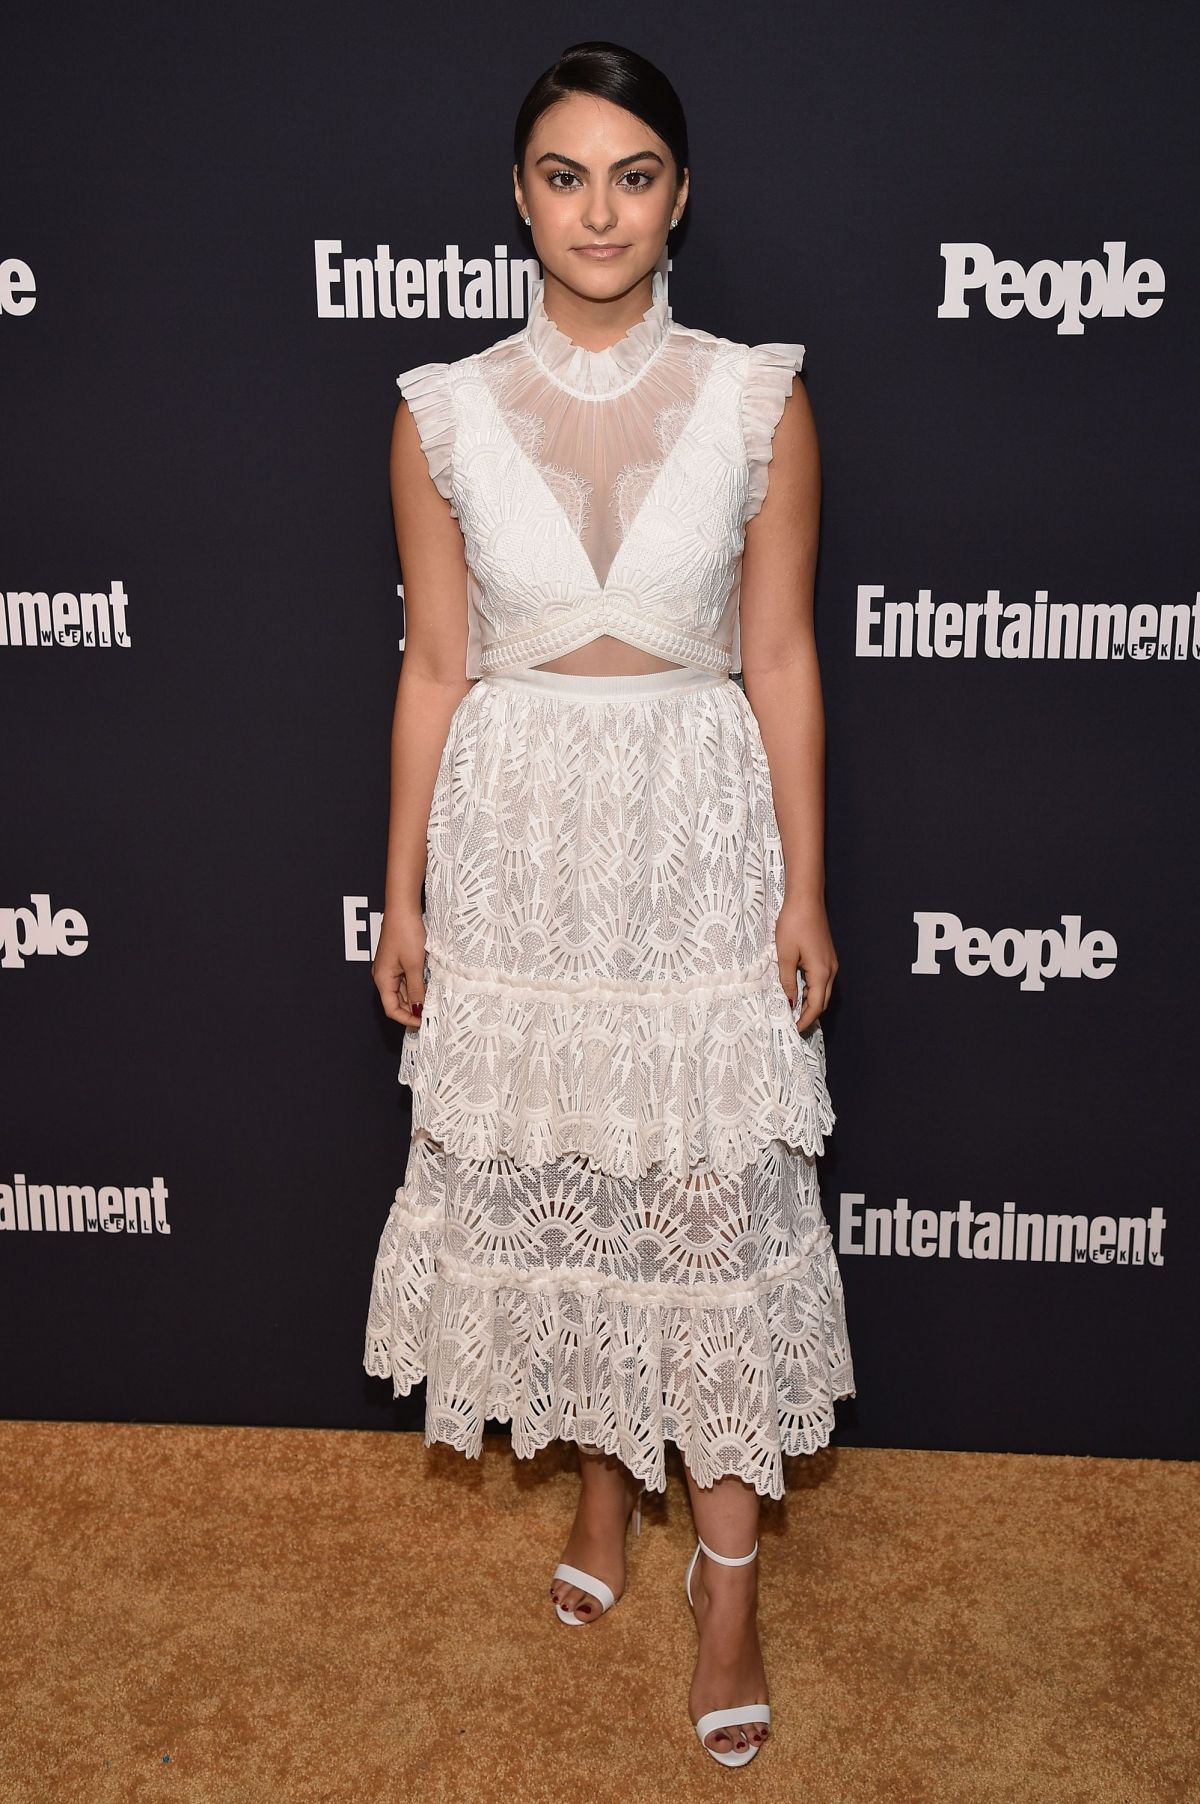 CAMILA MENDES at Entertainment Weekly and People Upfronts Party in New York 05/15/2017